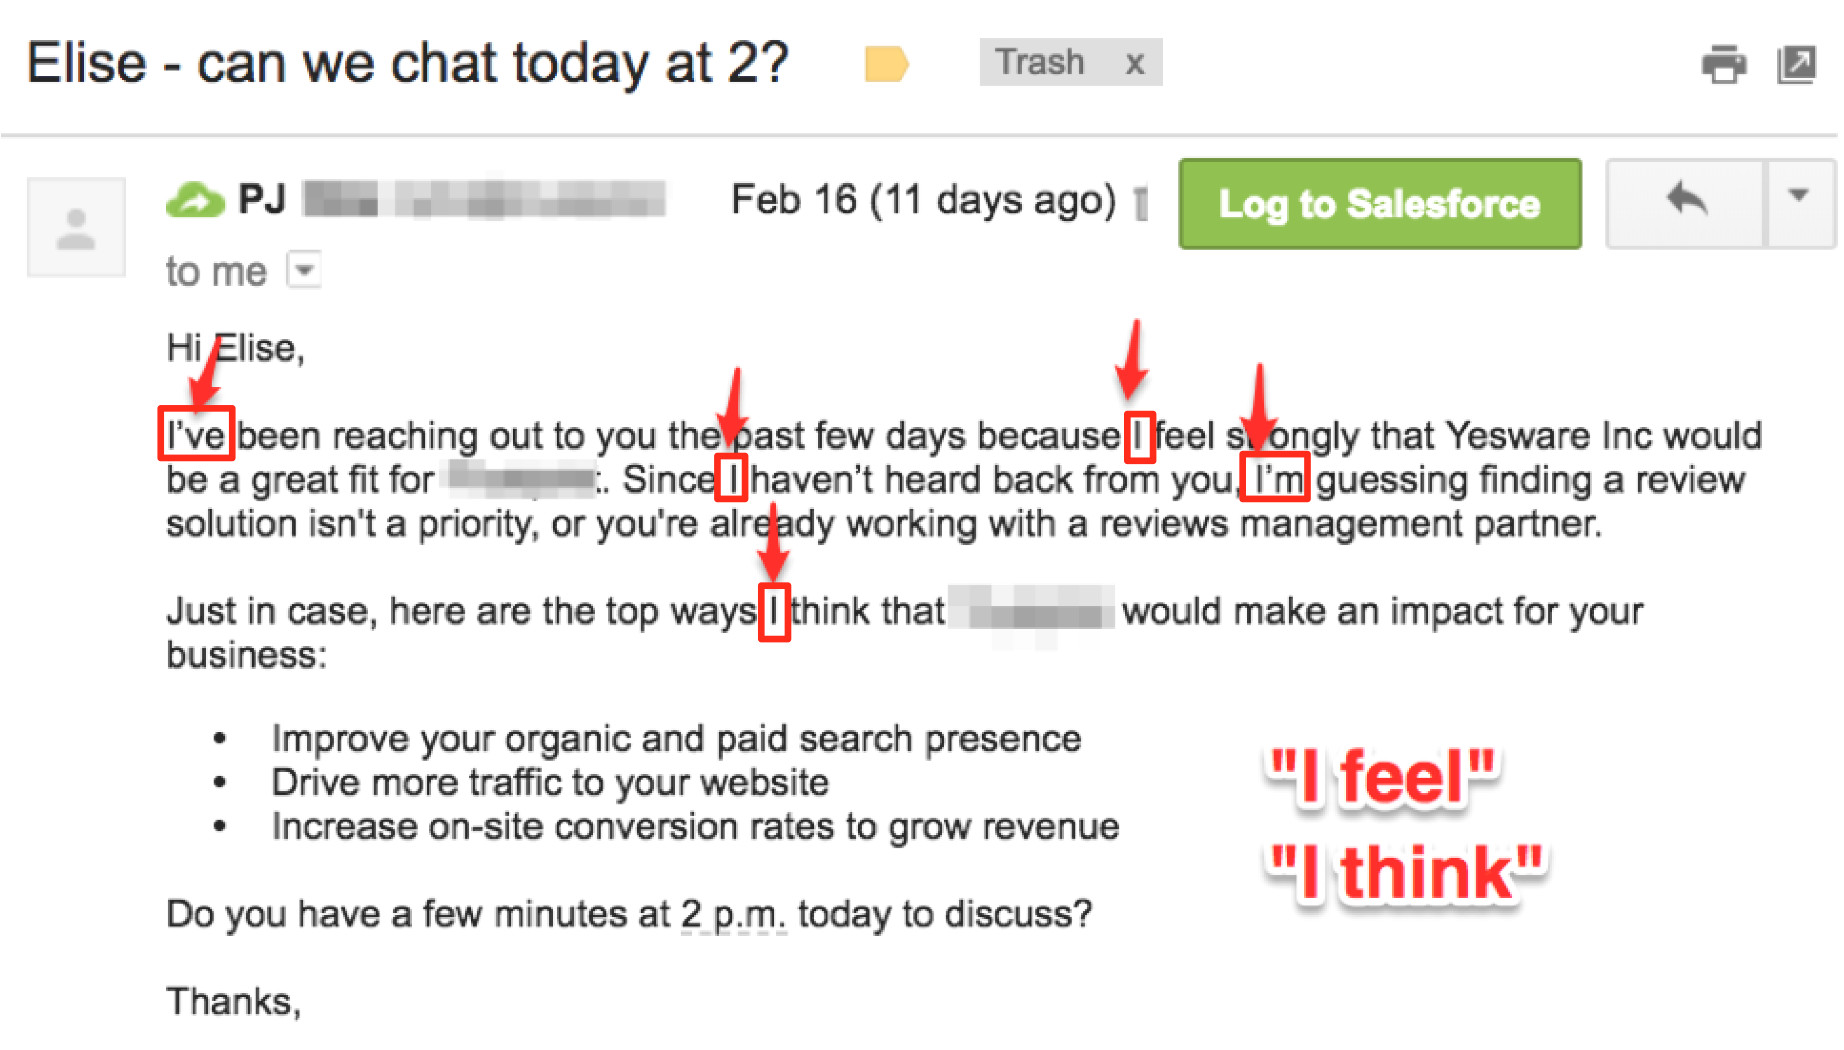 Sales Pitch Email Template the Best Sales Pitch Examples 11 Real Ones to Steal From